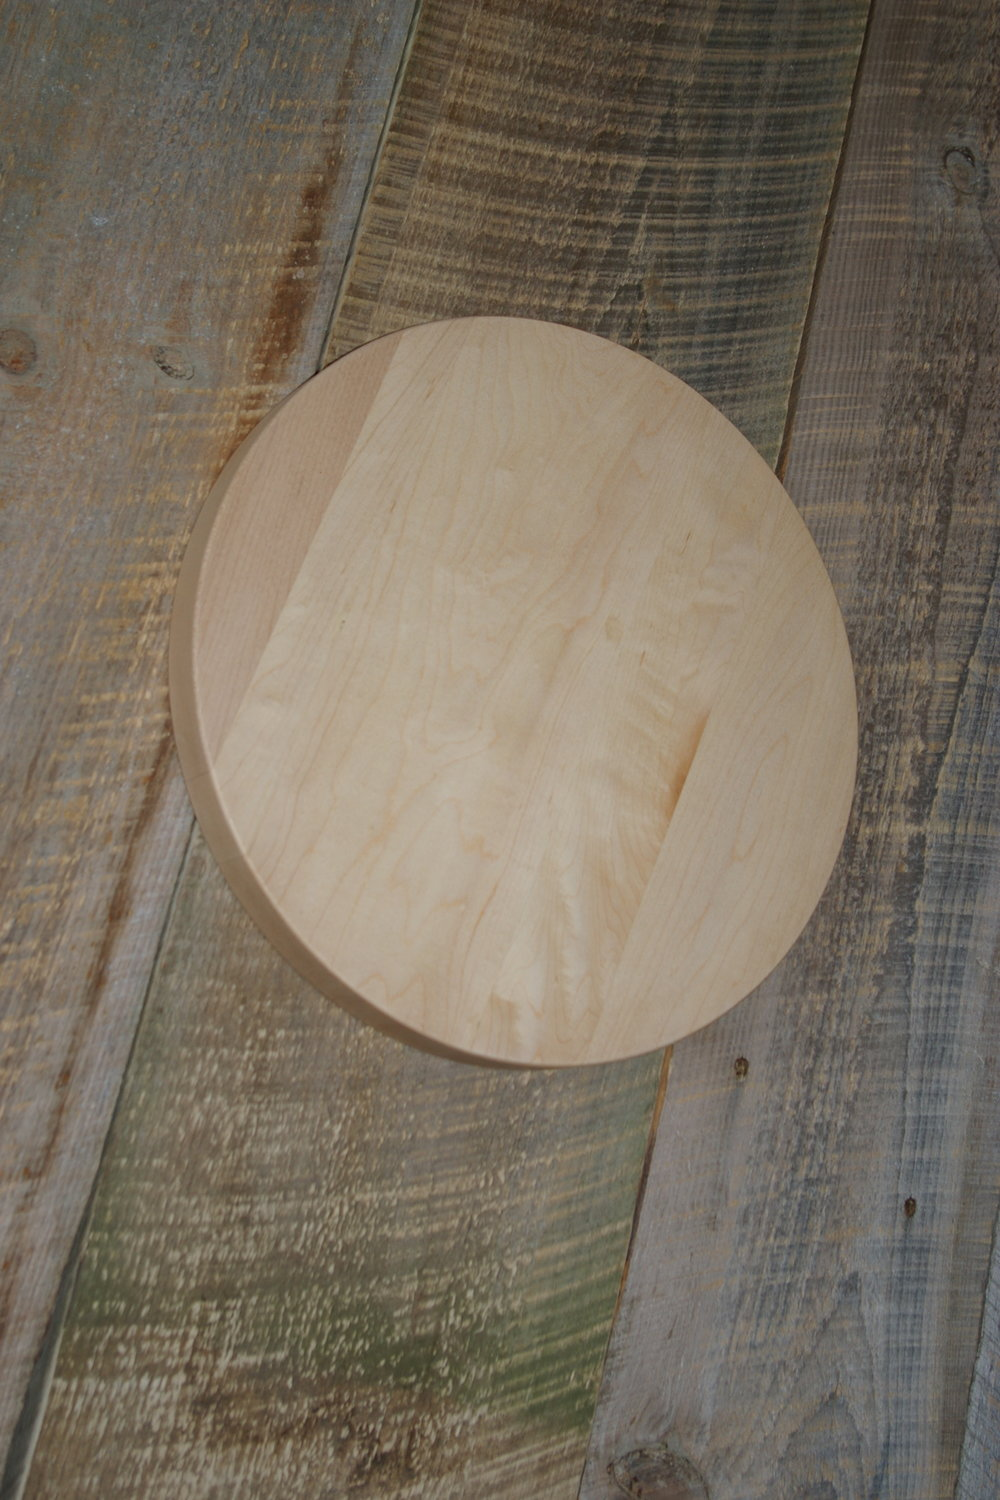 Round Maple Cutting Board reg $25 now $20 - #108 Hard maple cutting boardsize 14